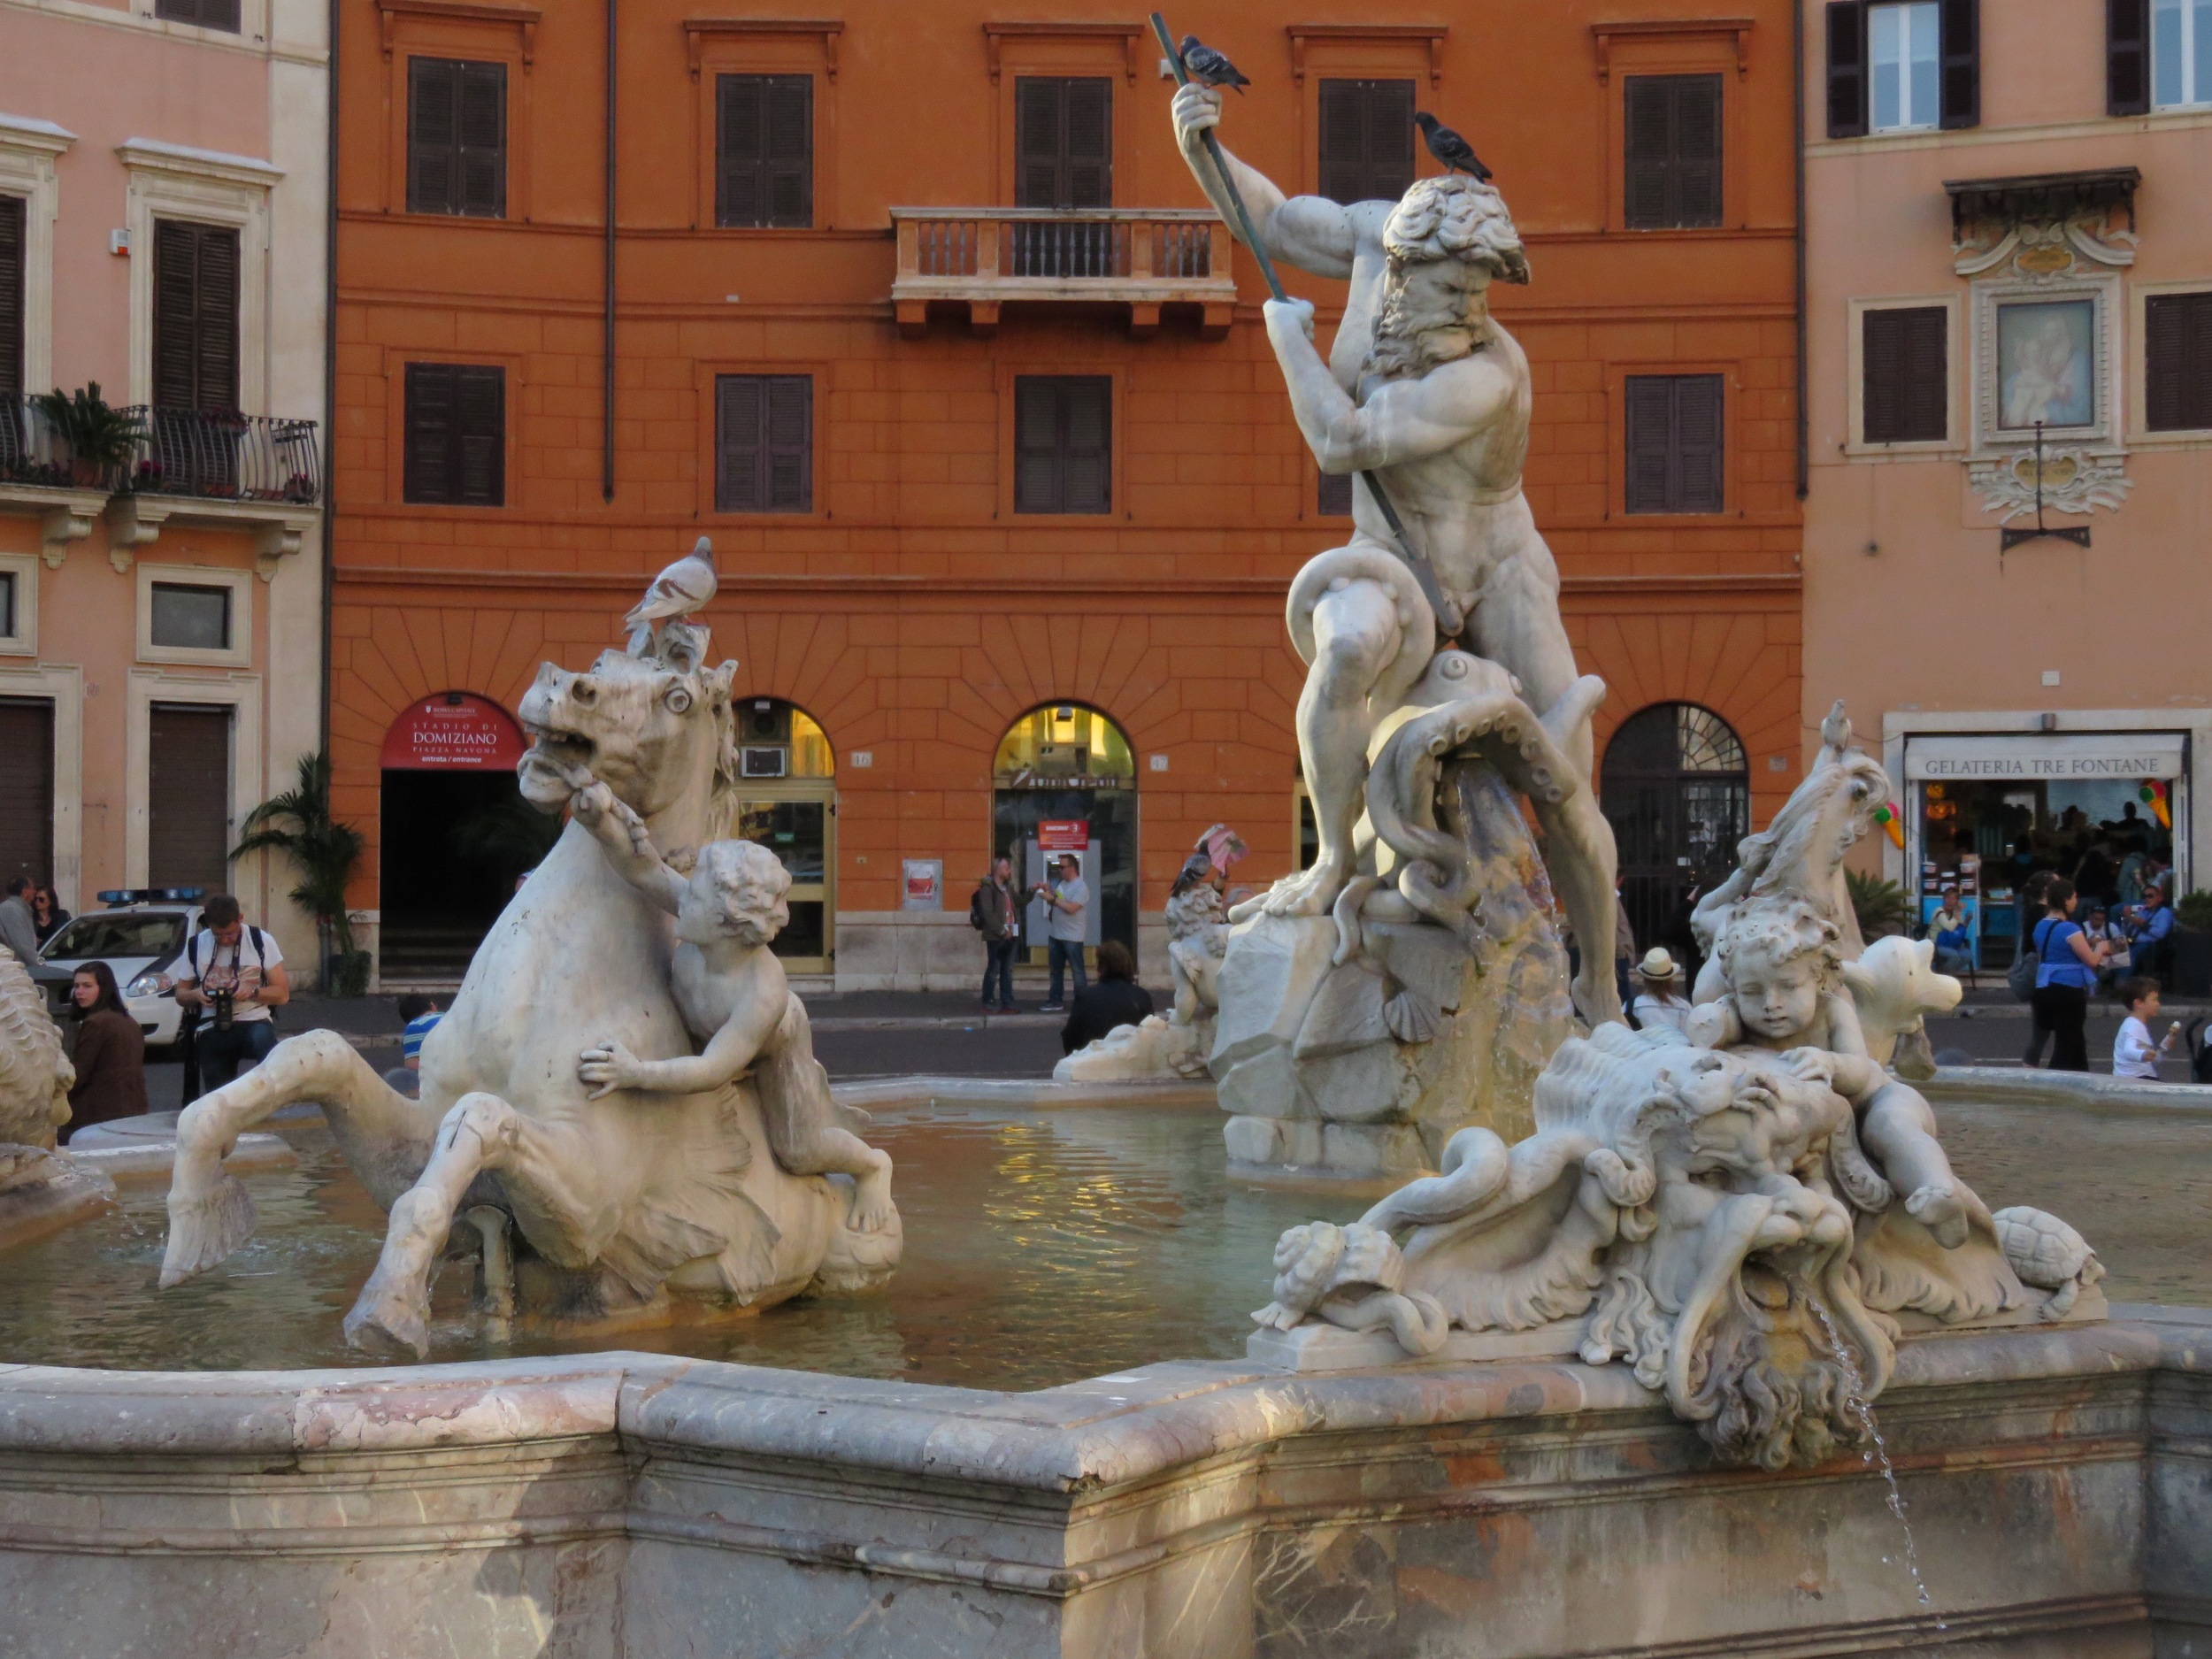 Nothing says Rome like the magnificent Bernini statues in the Piazza Navona. We bought scalped tickets to the Borghese Gallery to see more of the Master's work and the amazing Caravaggio collection.